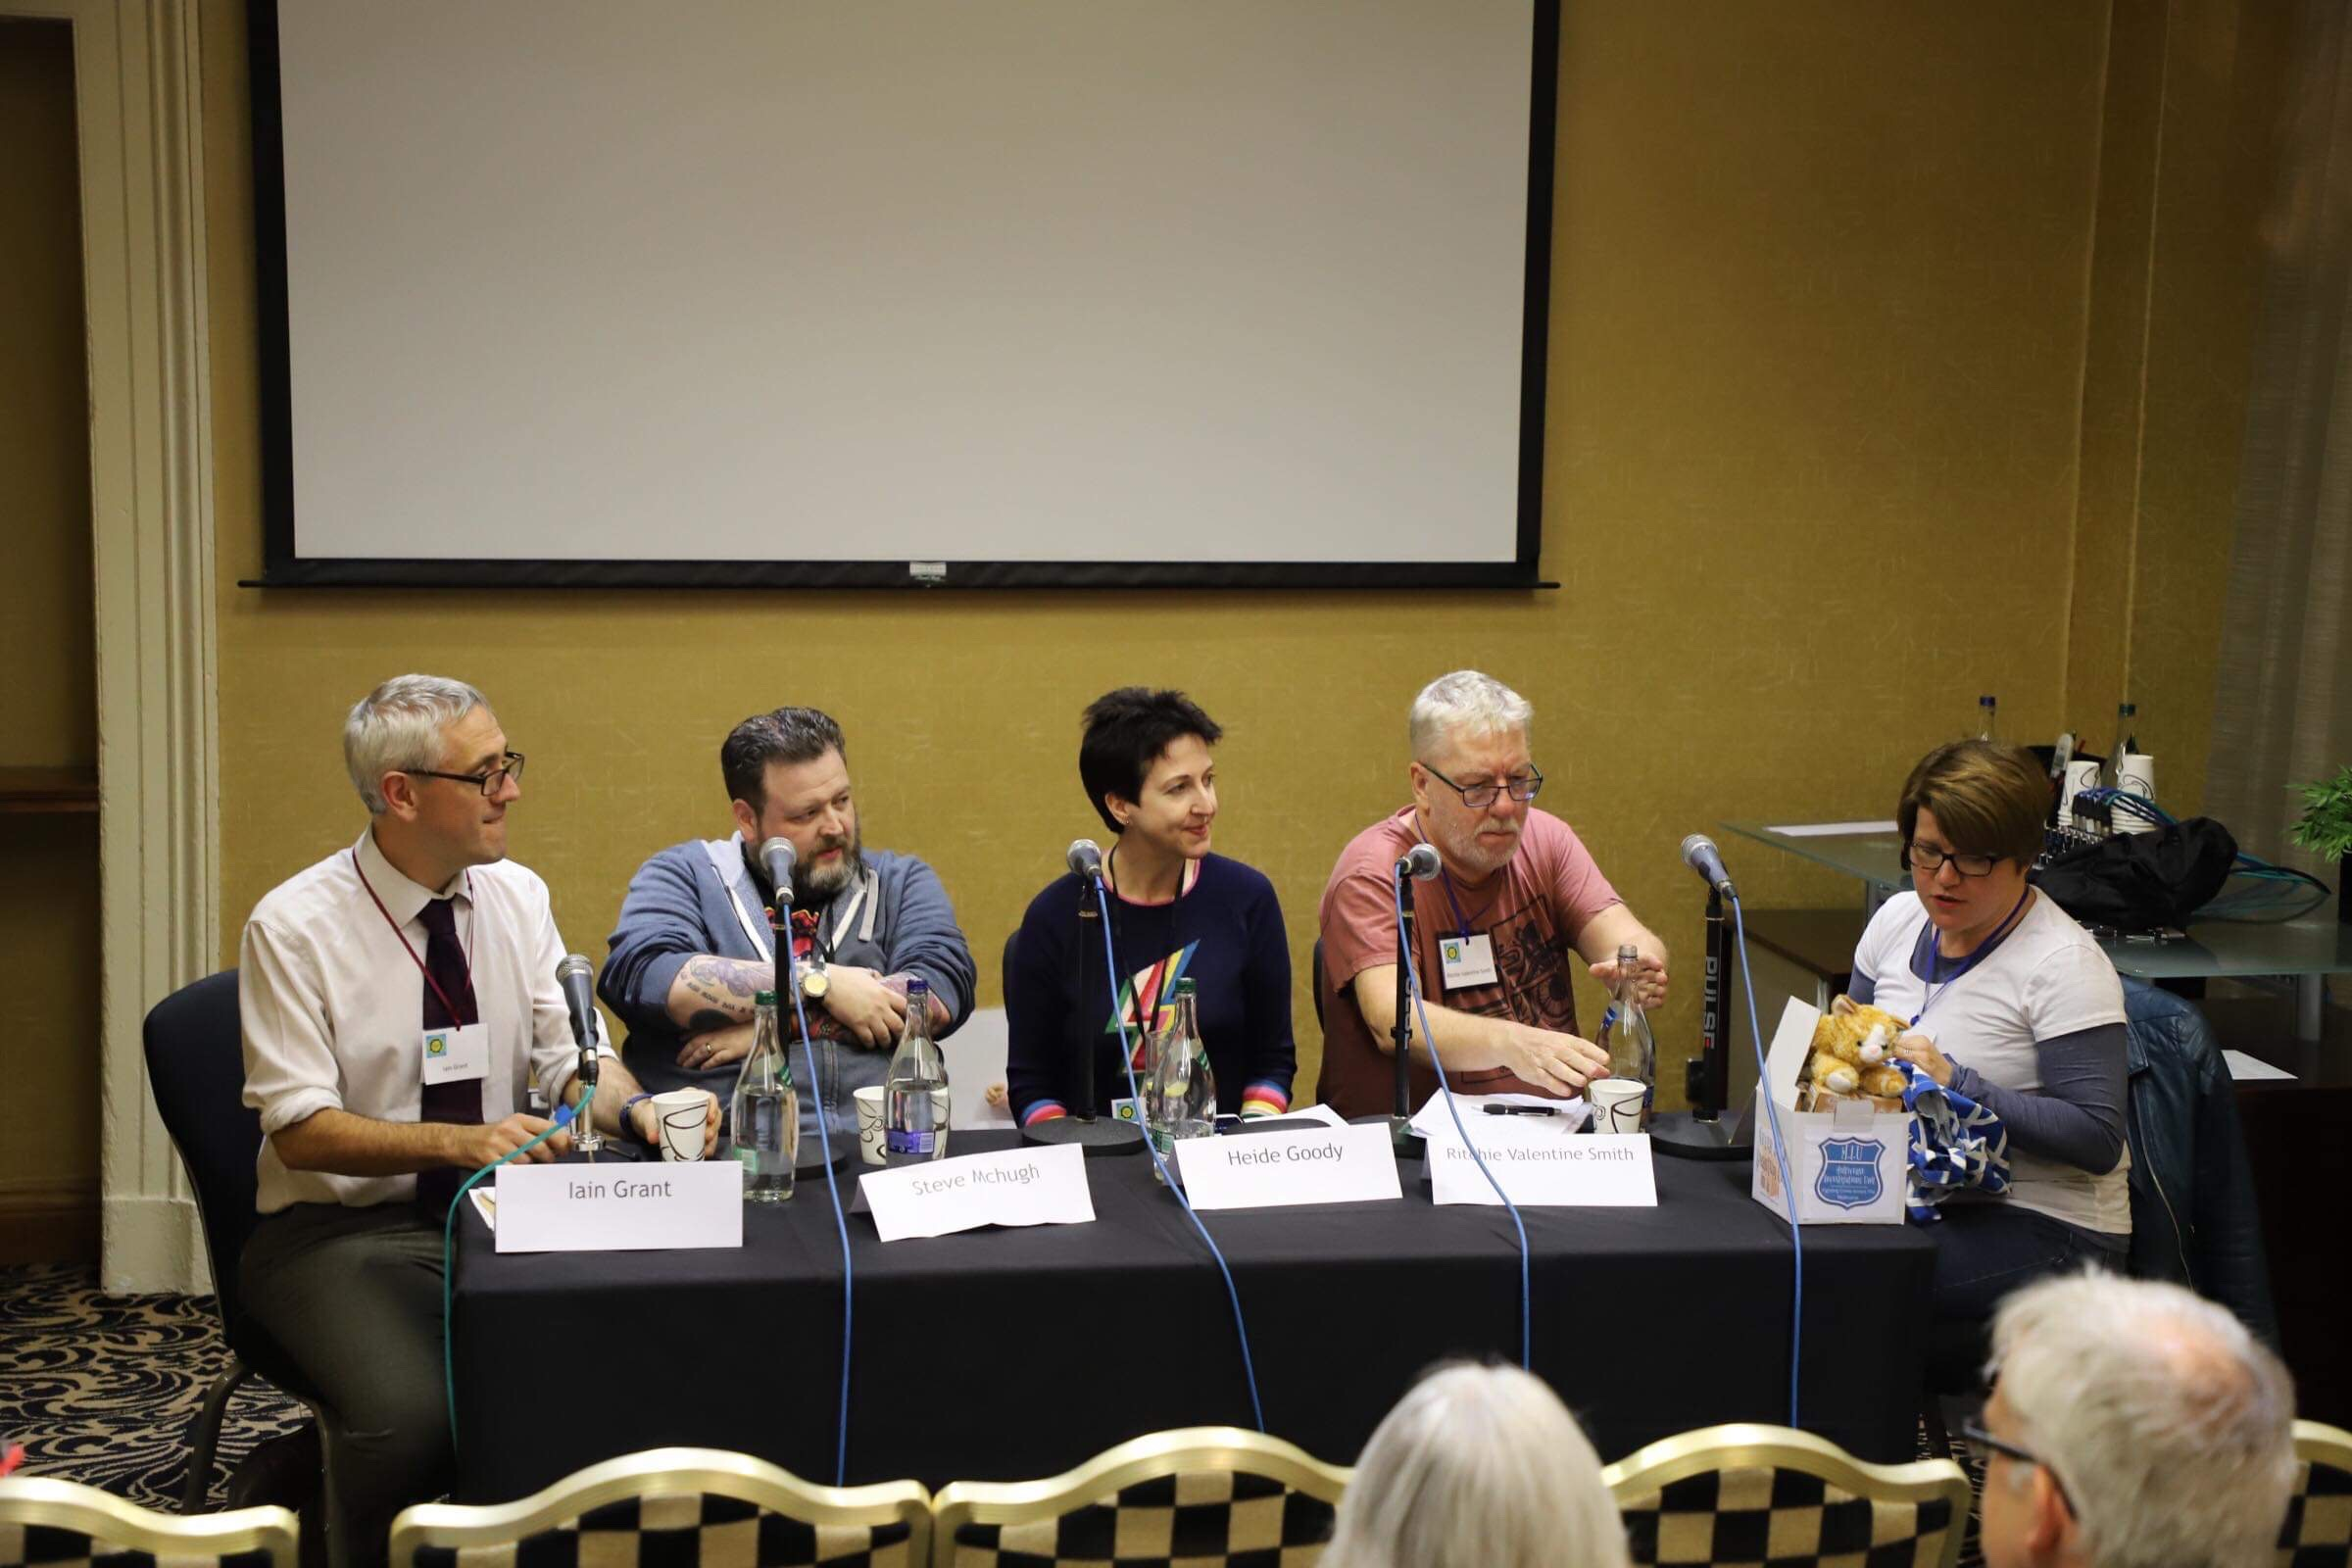 Self publishing panel: Iain Grant, Steve McHugh, Heide Goody, Ritchie Valentine Smith, Rachel McLean